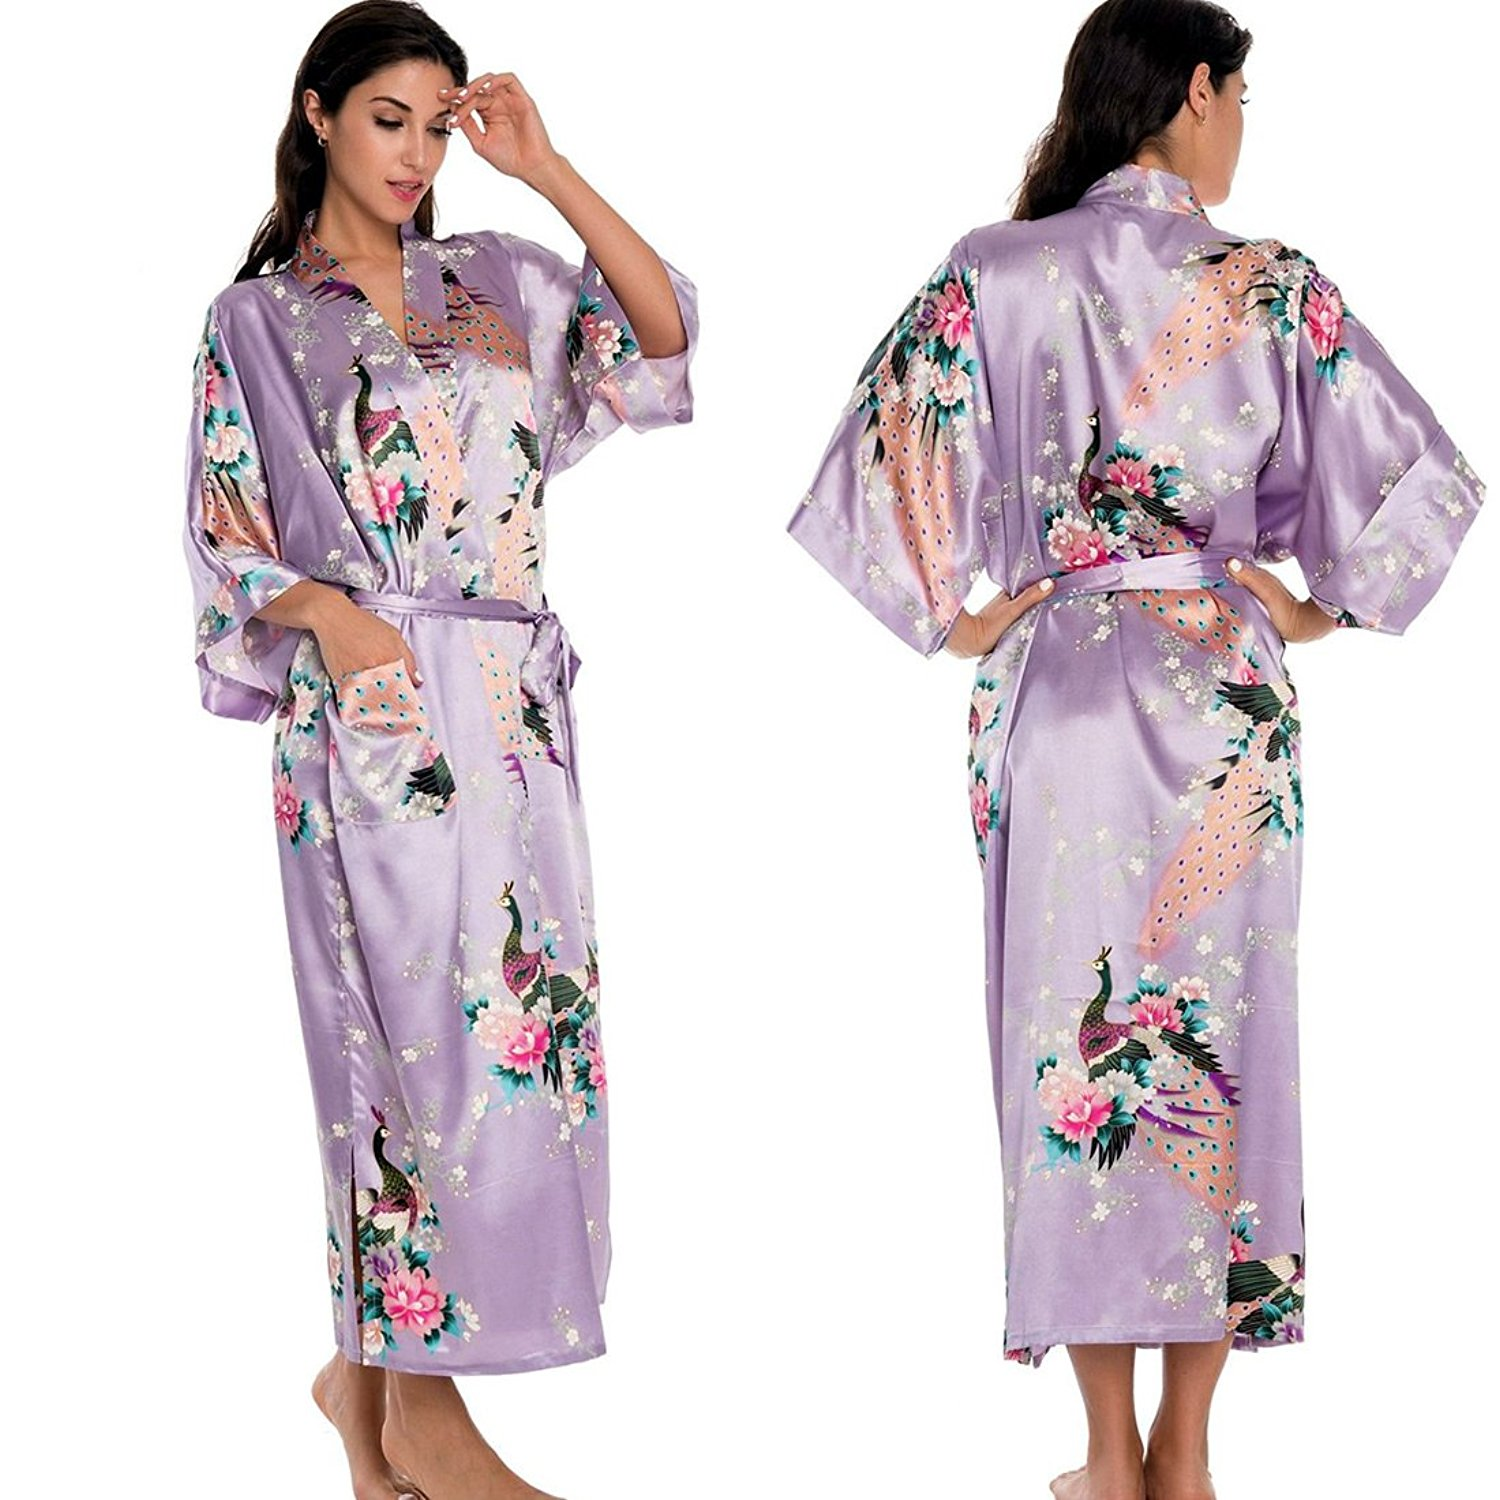 2c175c6ad1 Get Quotations · Comeon Women Gown Robe Kimono 4 Colours Premium Version  Peacock Premium Dressing Gown Robe